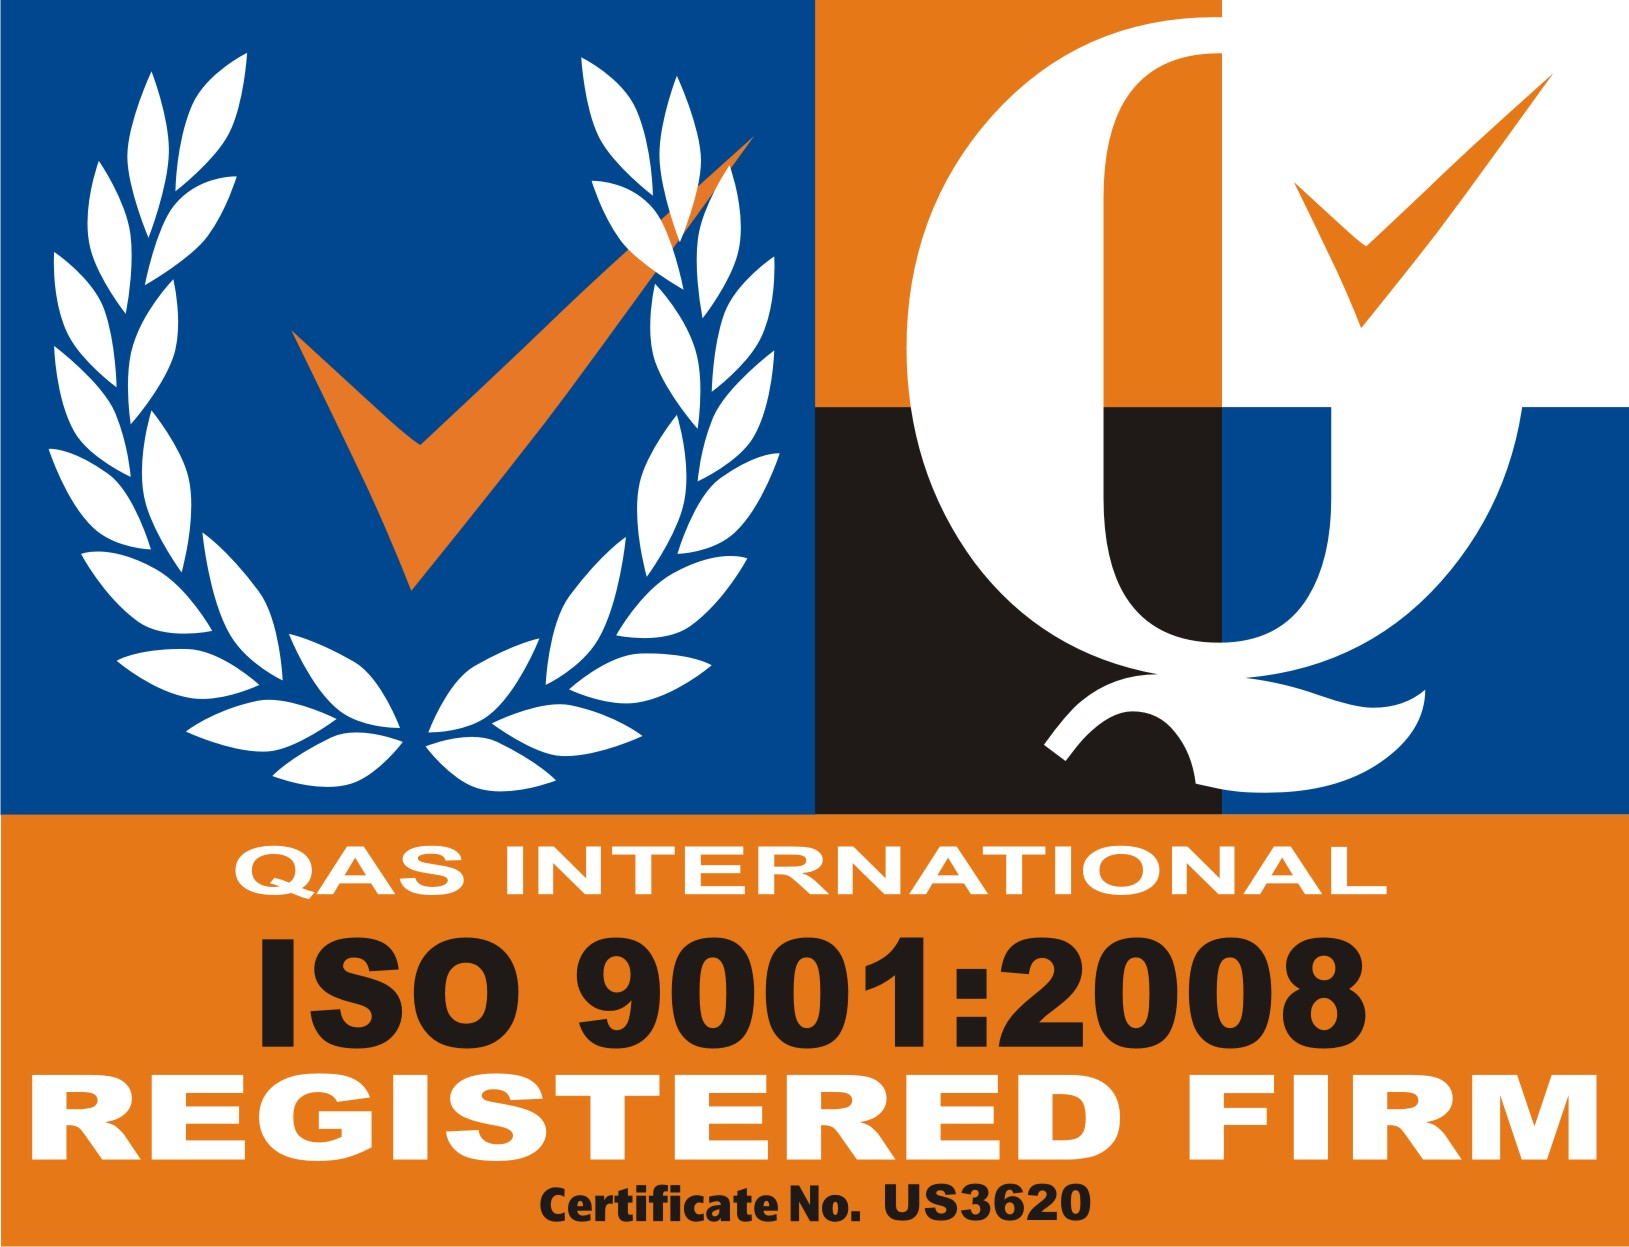 ISO QAS REGISTERED